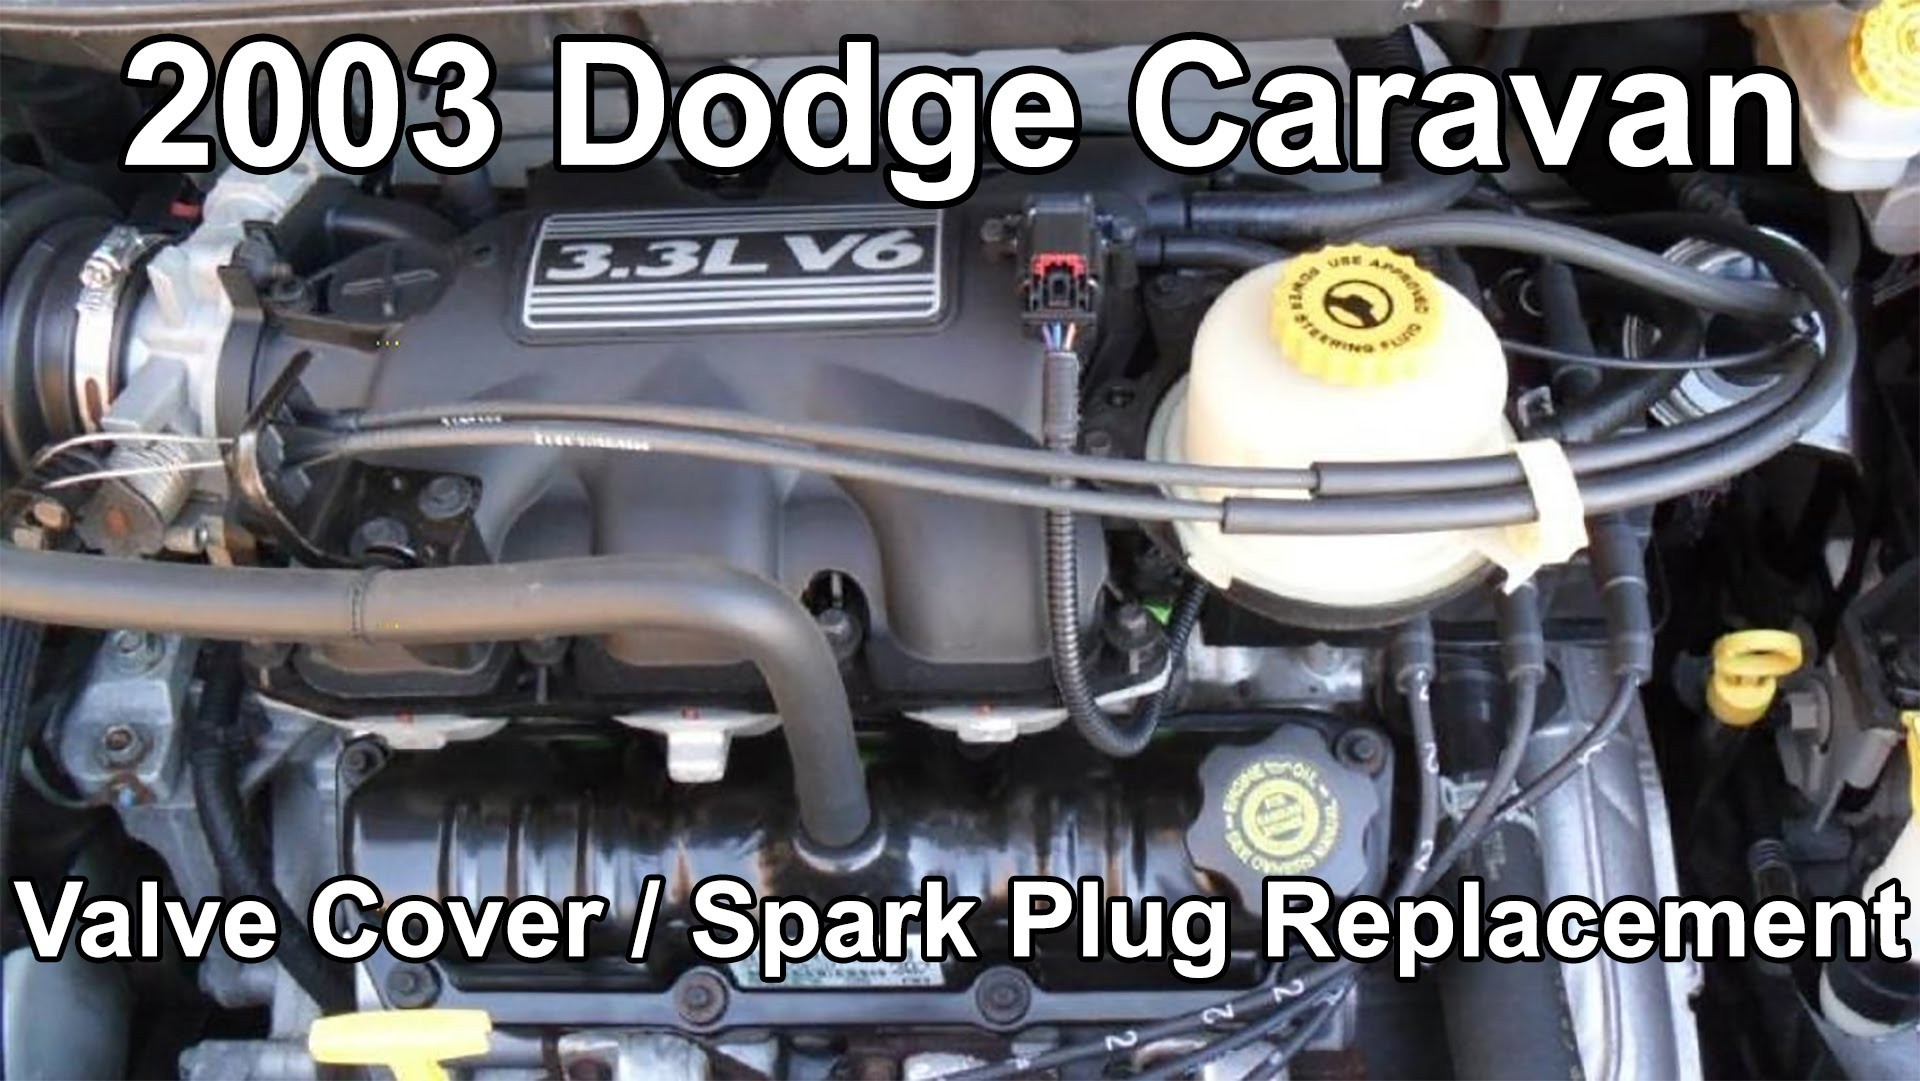 2005 Chrysler town and Country Engine Diagram 2003 Dodge Caravan 3 3 Plugs and Valve Cover Gasket Change Of 2005 Chrysler town and Country Engine Diagram